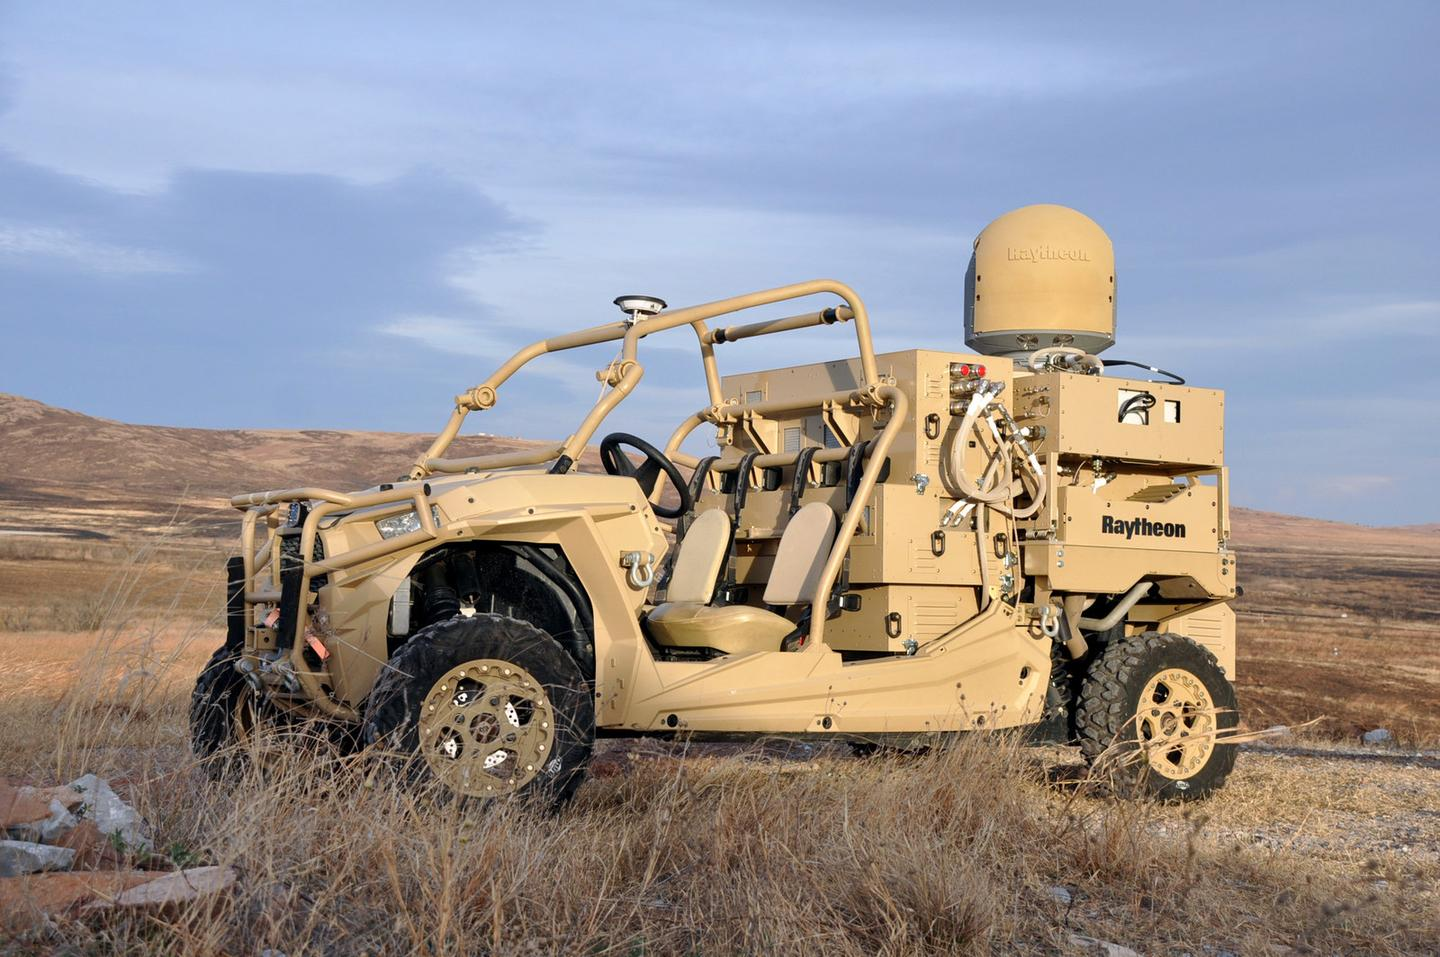 The vehicle-mounted laser combines a solid state laser with an advanced variant of the company's Multi-Spectral Targeting System,  installed on a small, all-terrain Polaris militarized vehicle